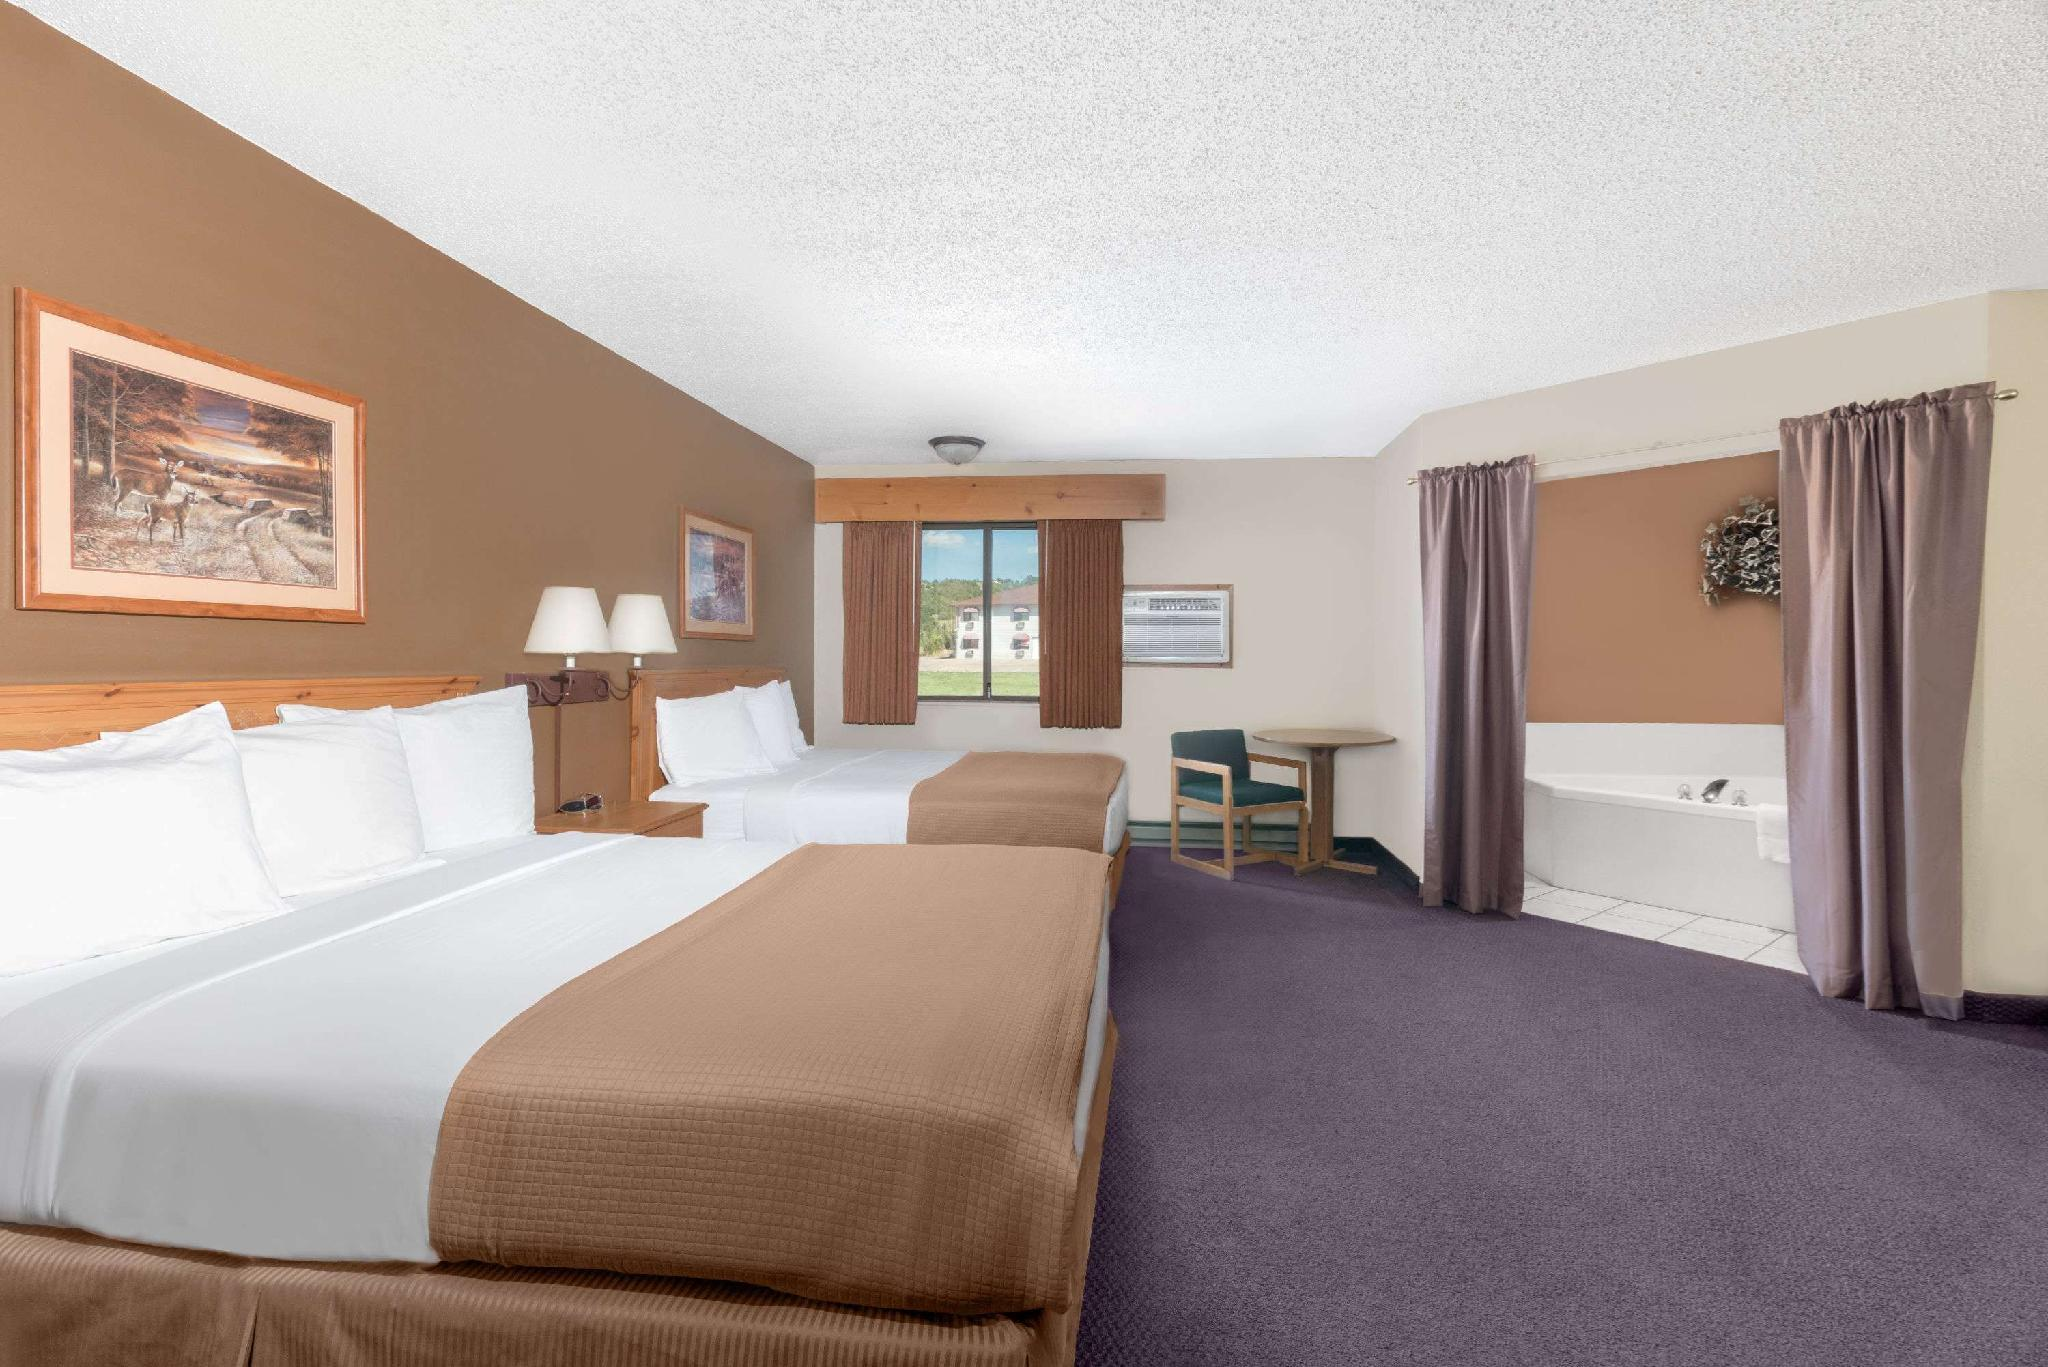 2 Queen Bed and Bunkbeds Suite Non-Smoking